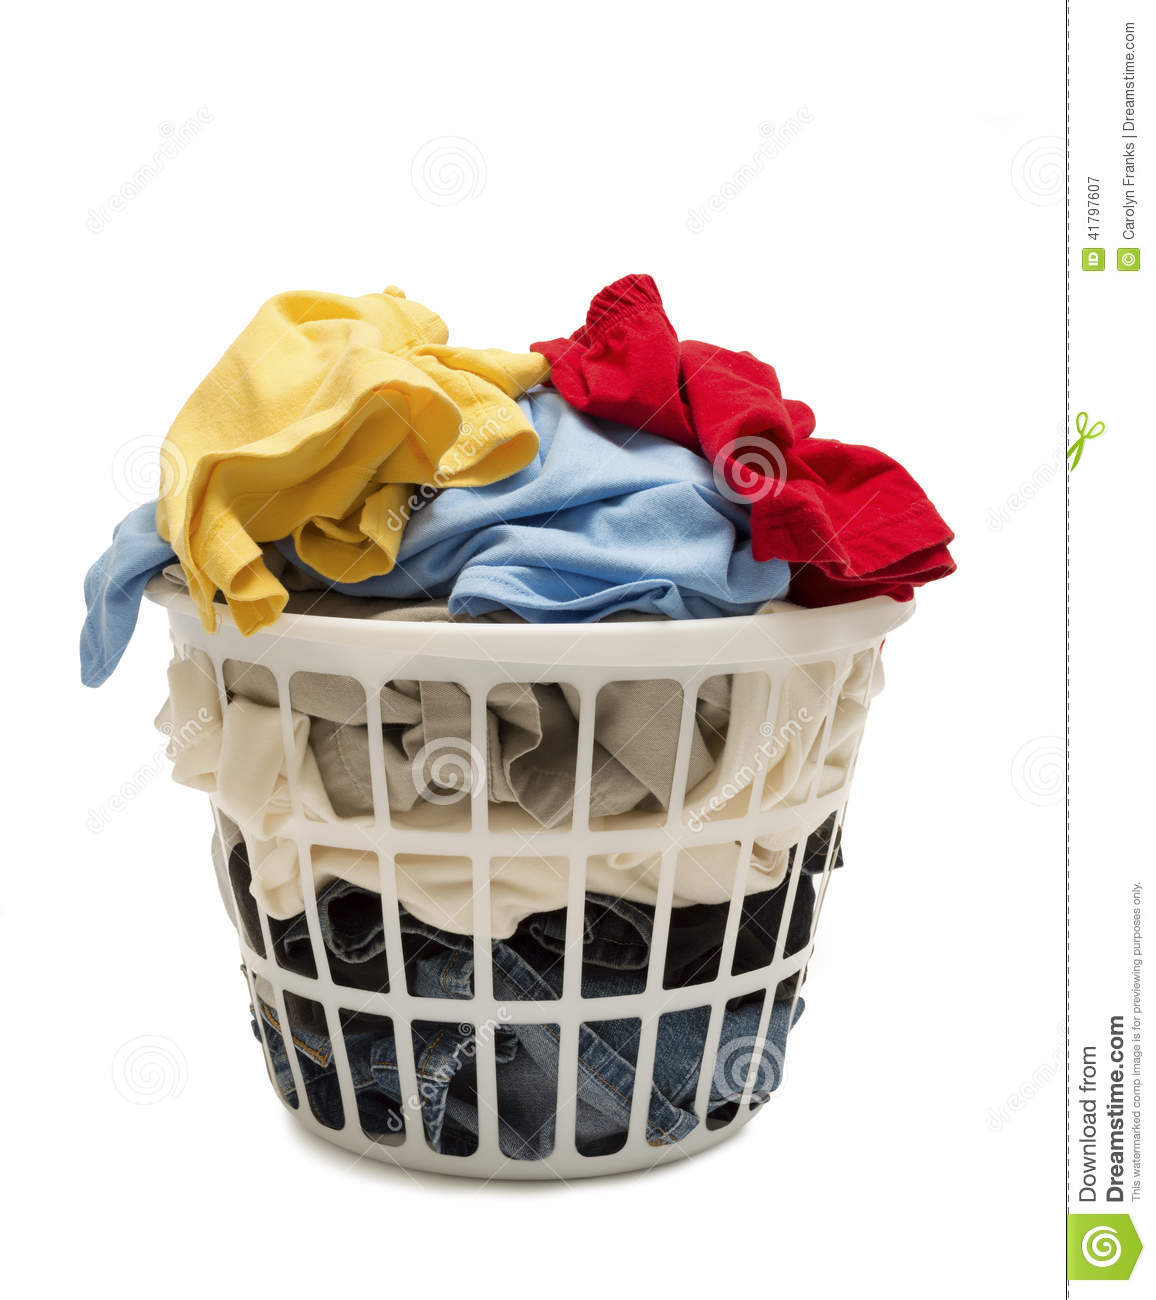 Dirty Laundry Baskets Full Laundry Basket With Dirty Clothes Stock Image